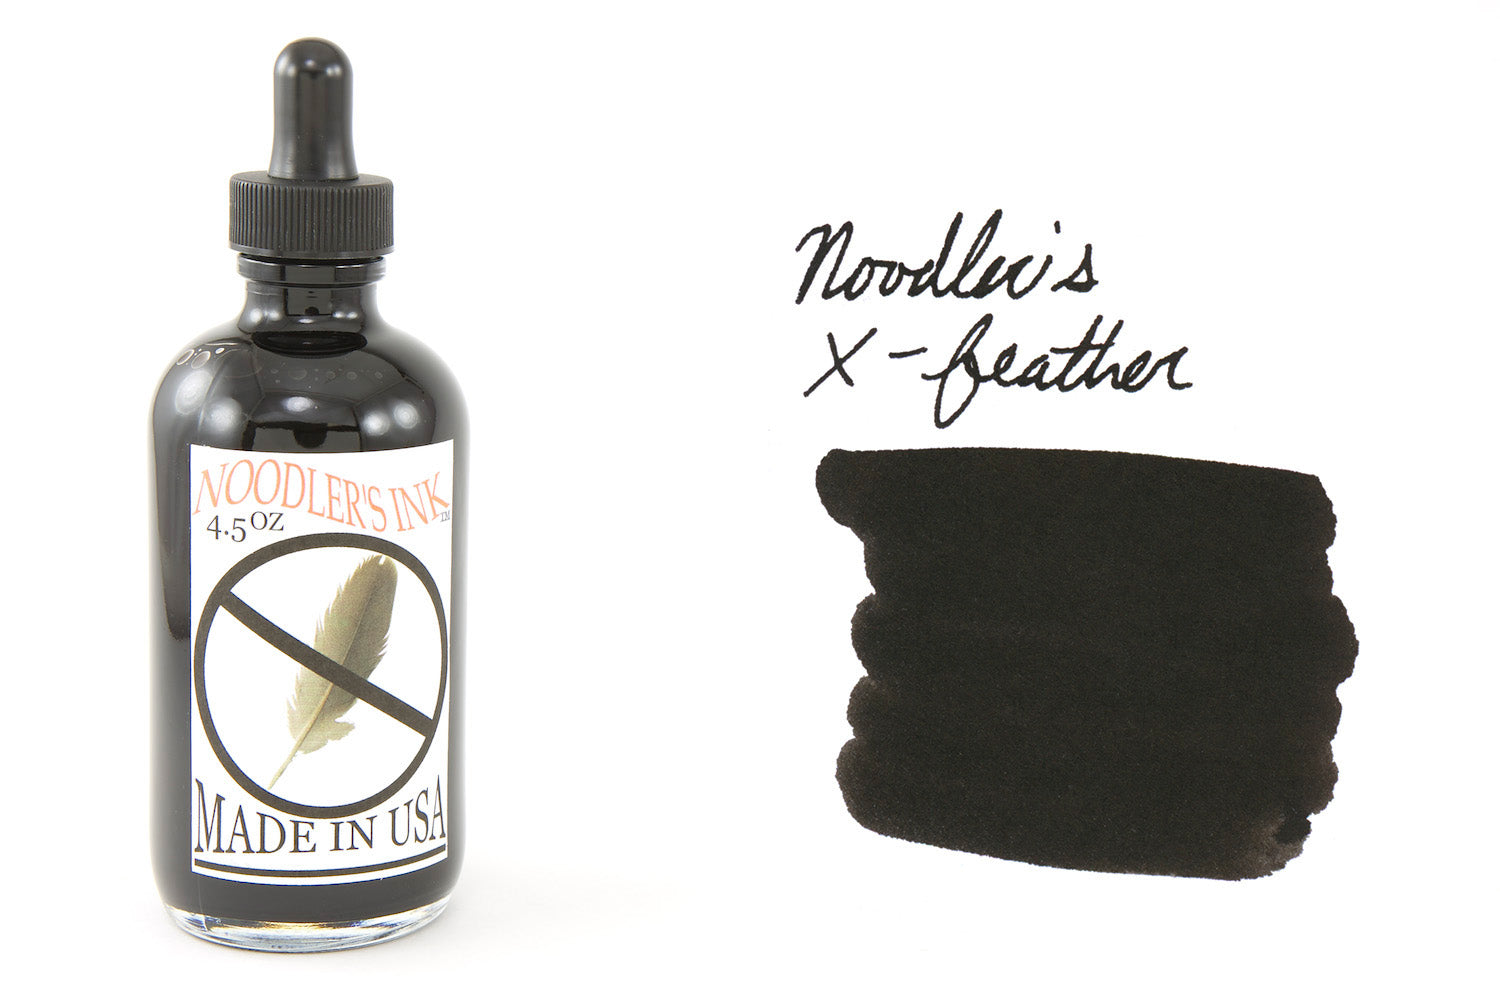 Noodler's X-Feather - 4.5oz Bottled Ink with Free Charlie Pen